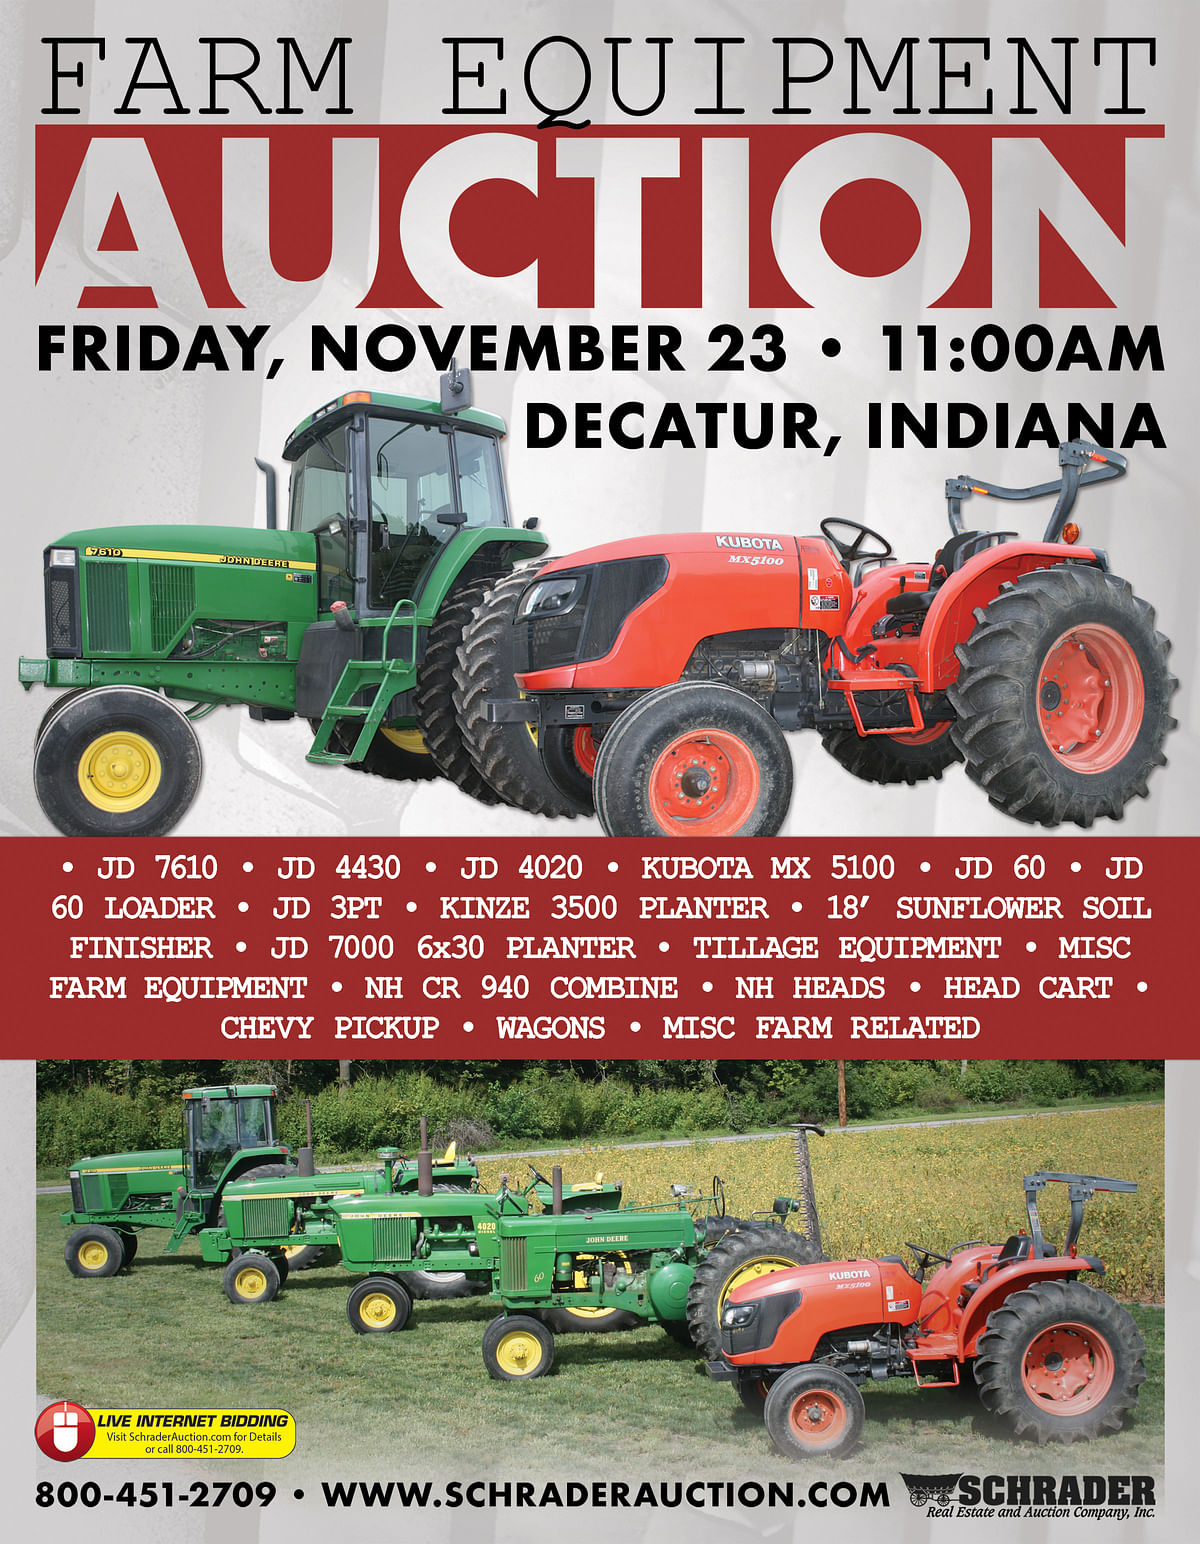 FARM EQUIPMENT AUCTION - FARM EQUIPMENT AUCTION IN ADAMS